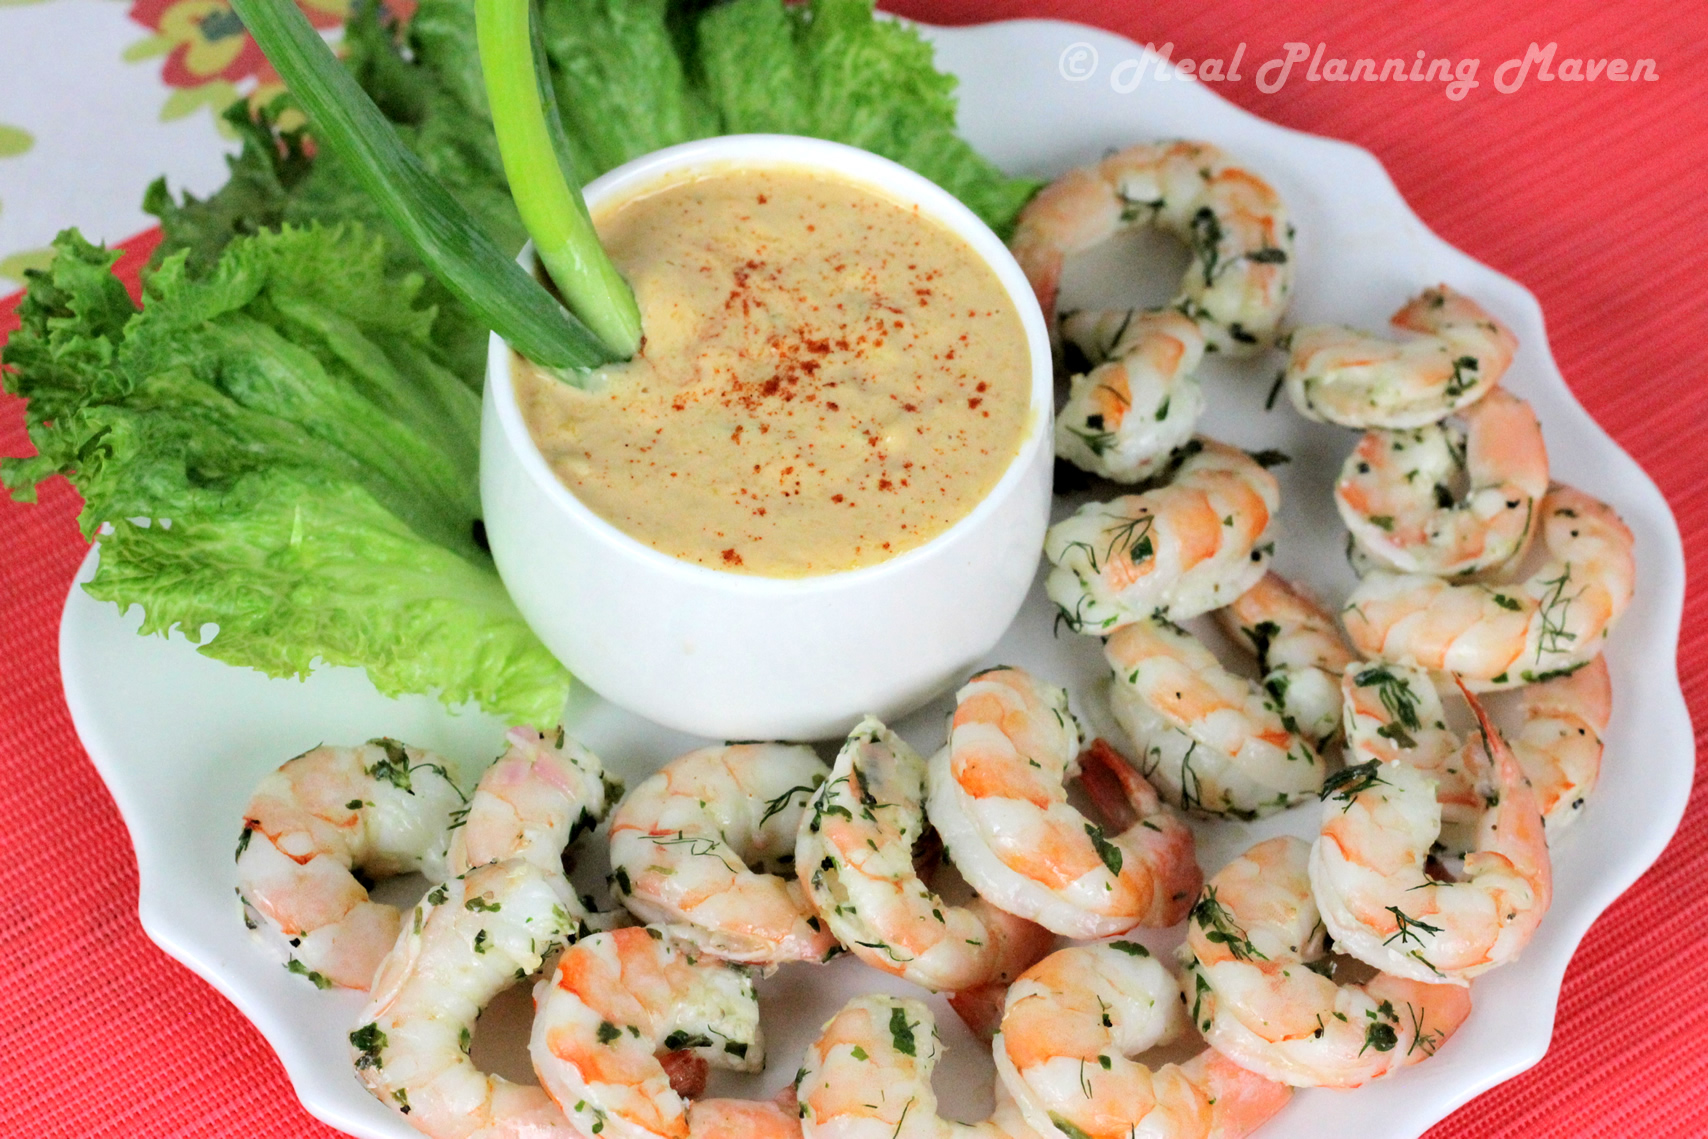 Chilled Shrimp with Spicy Mango Mayo